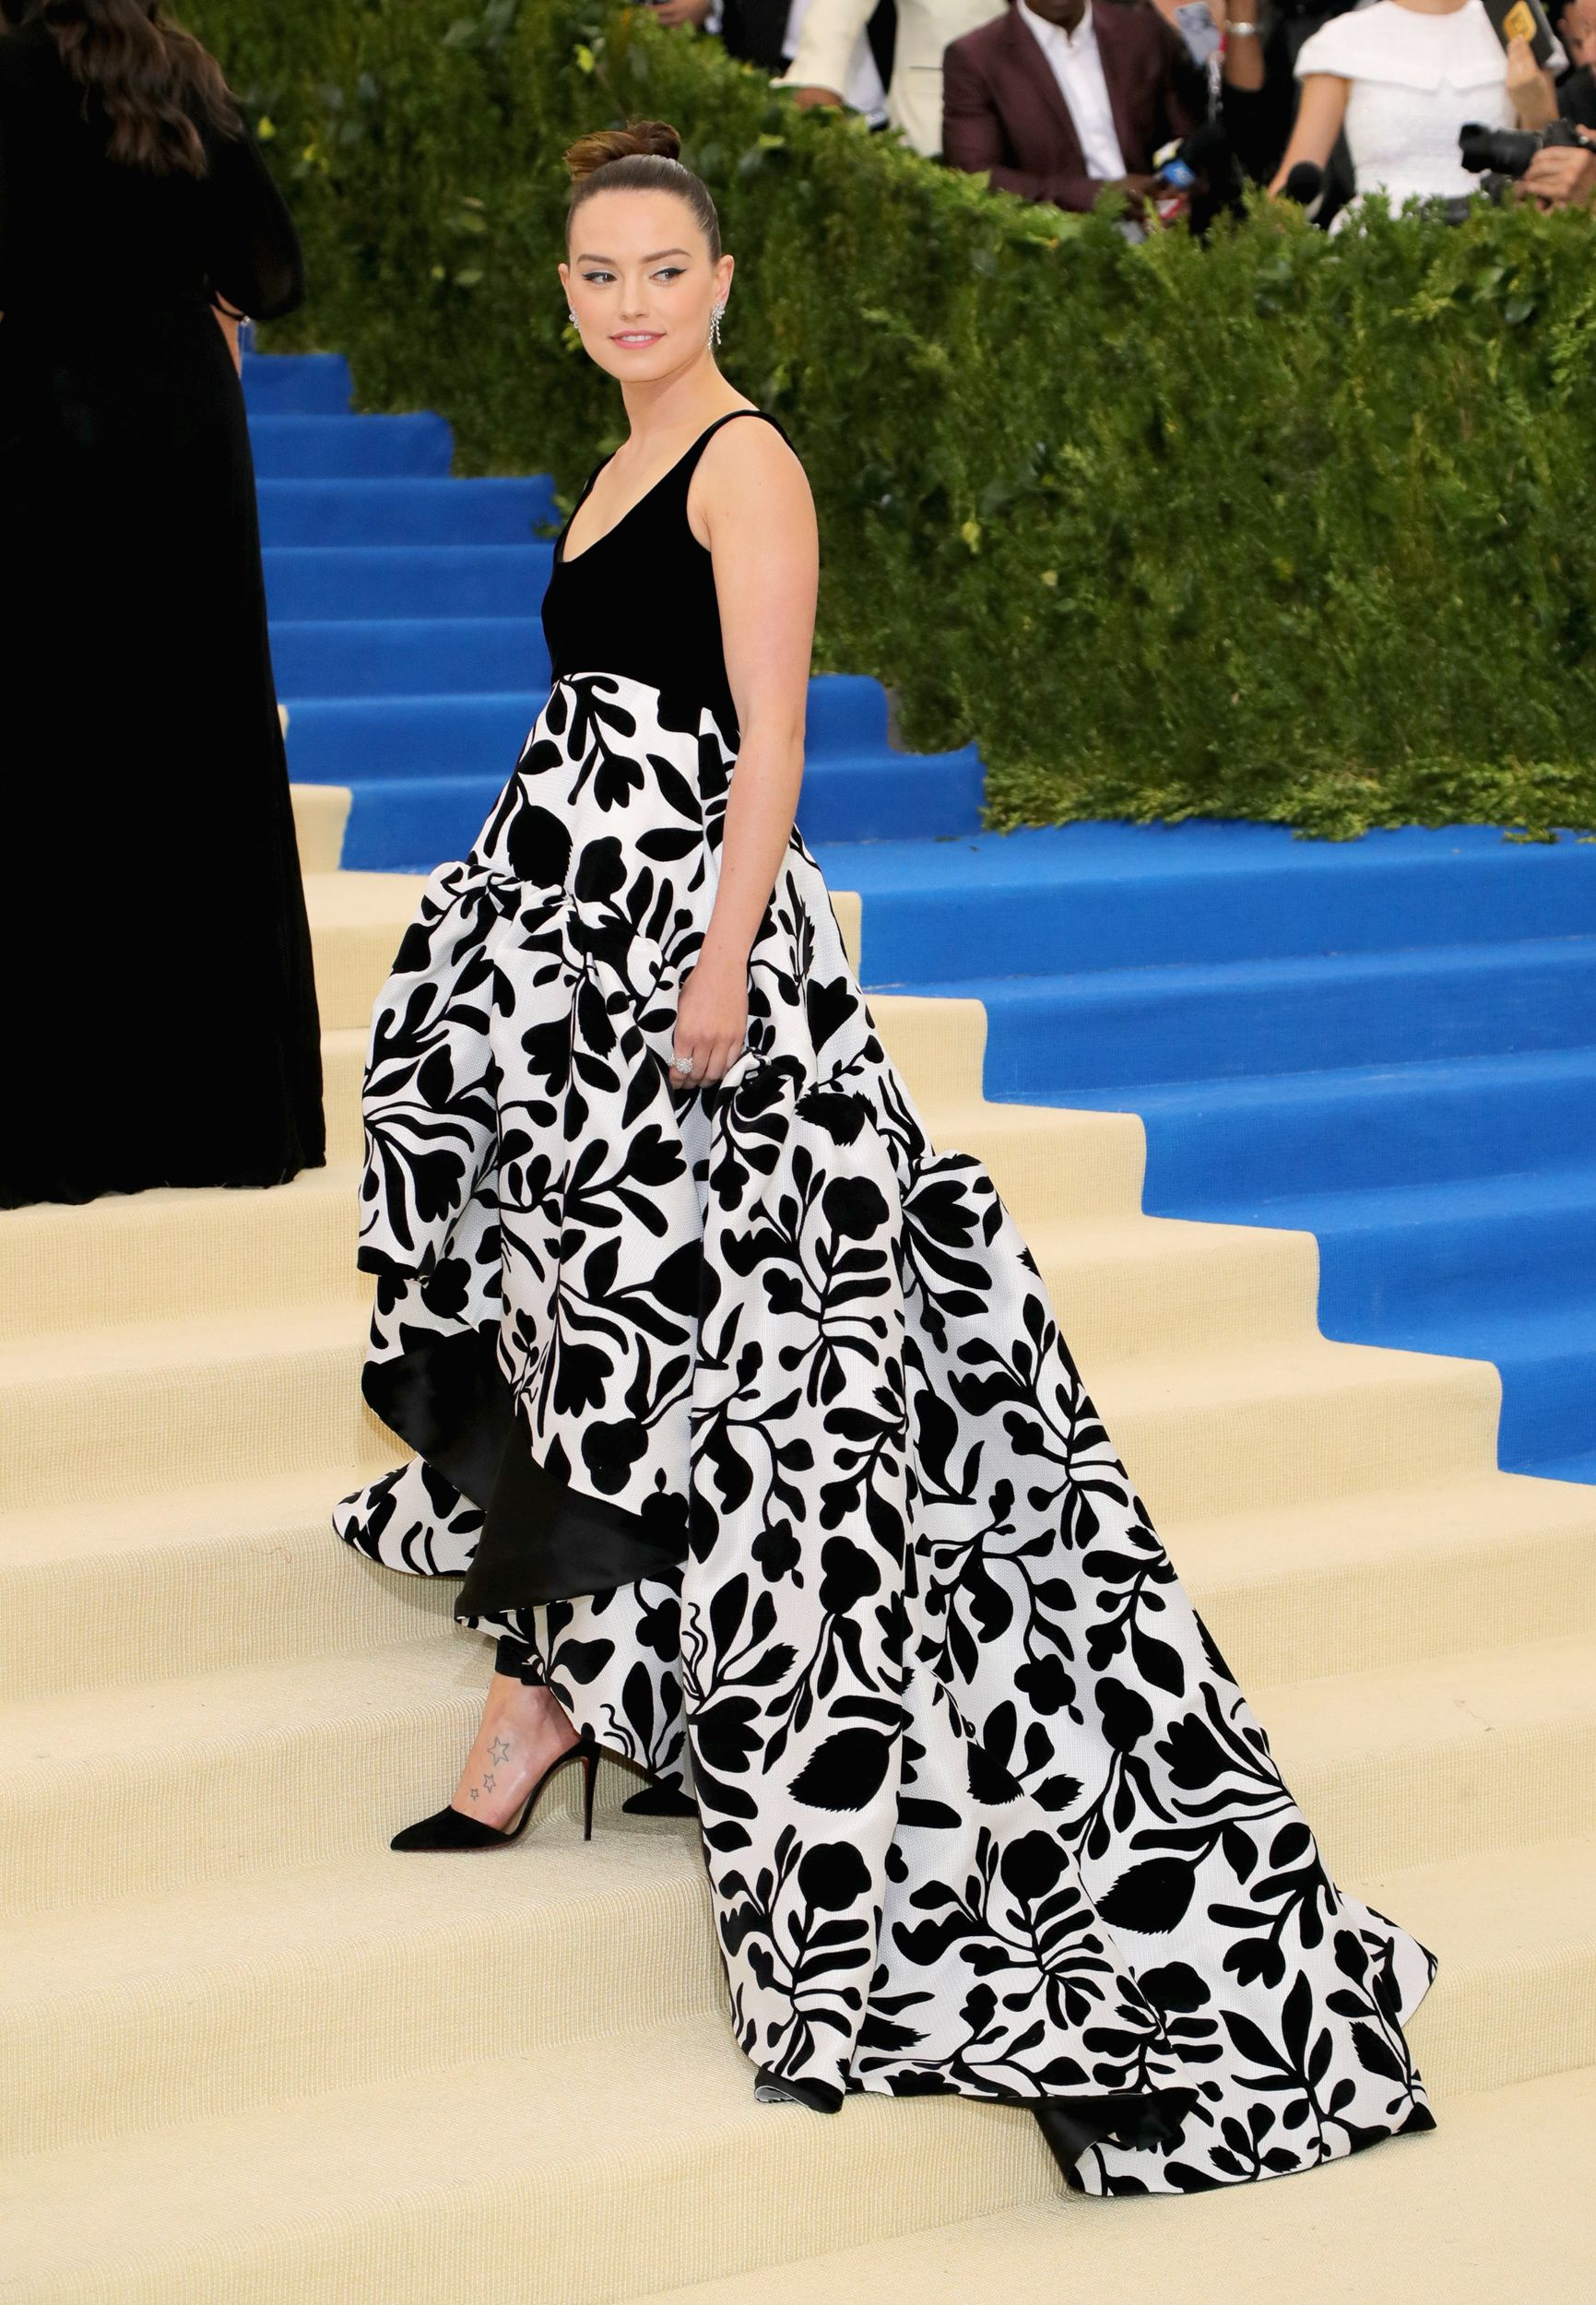 Met Gala 2013: Best and worst red carpet looks from